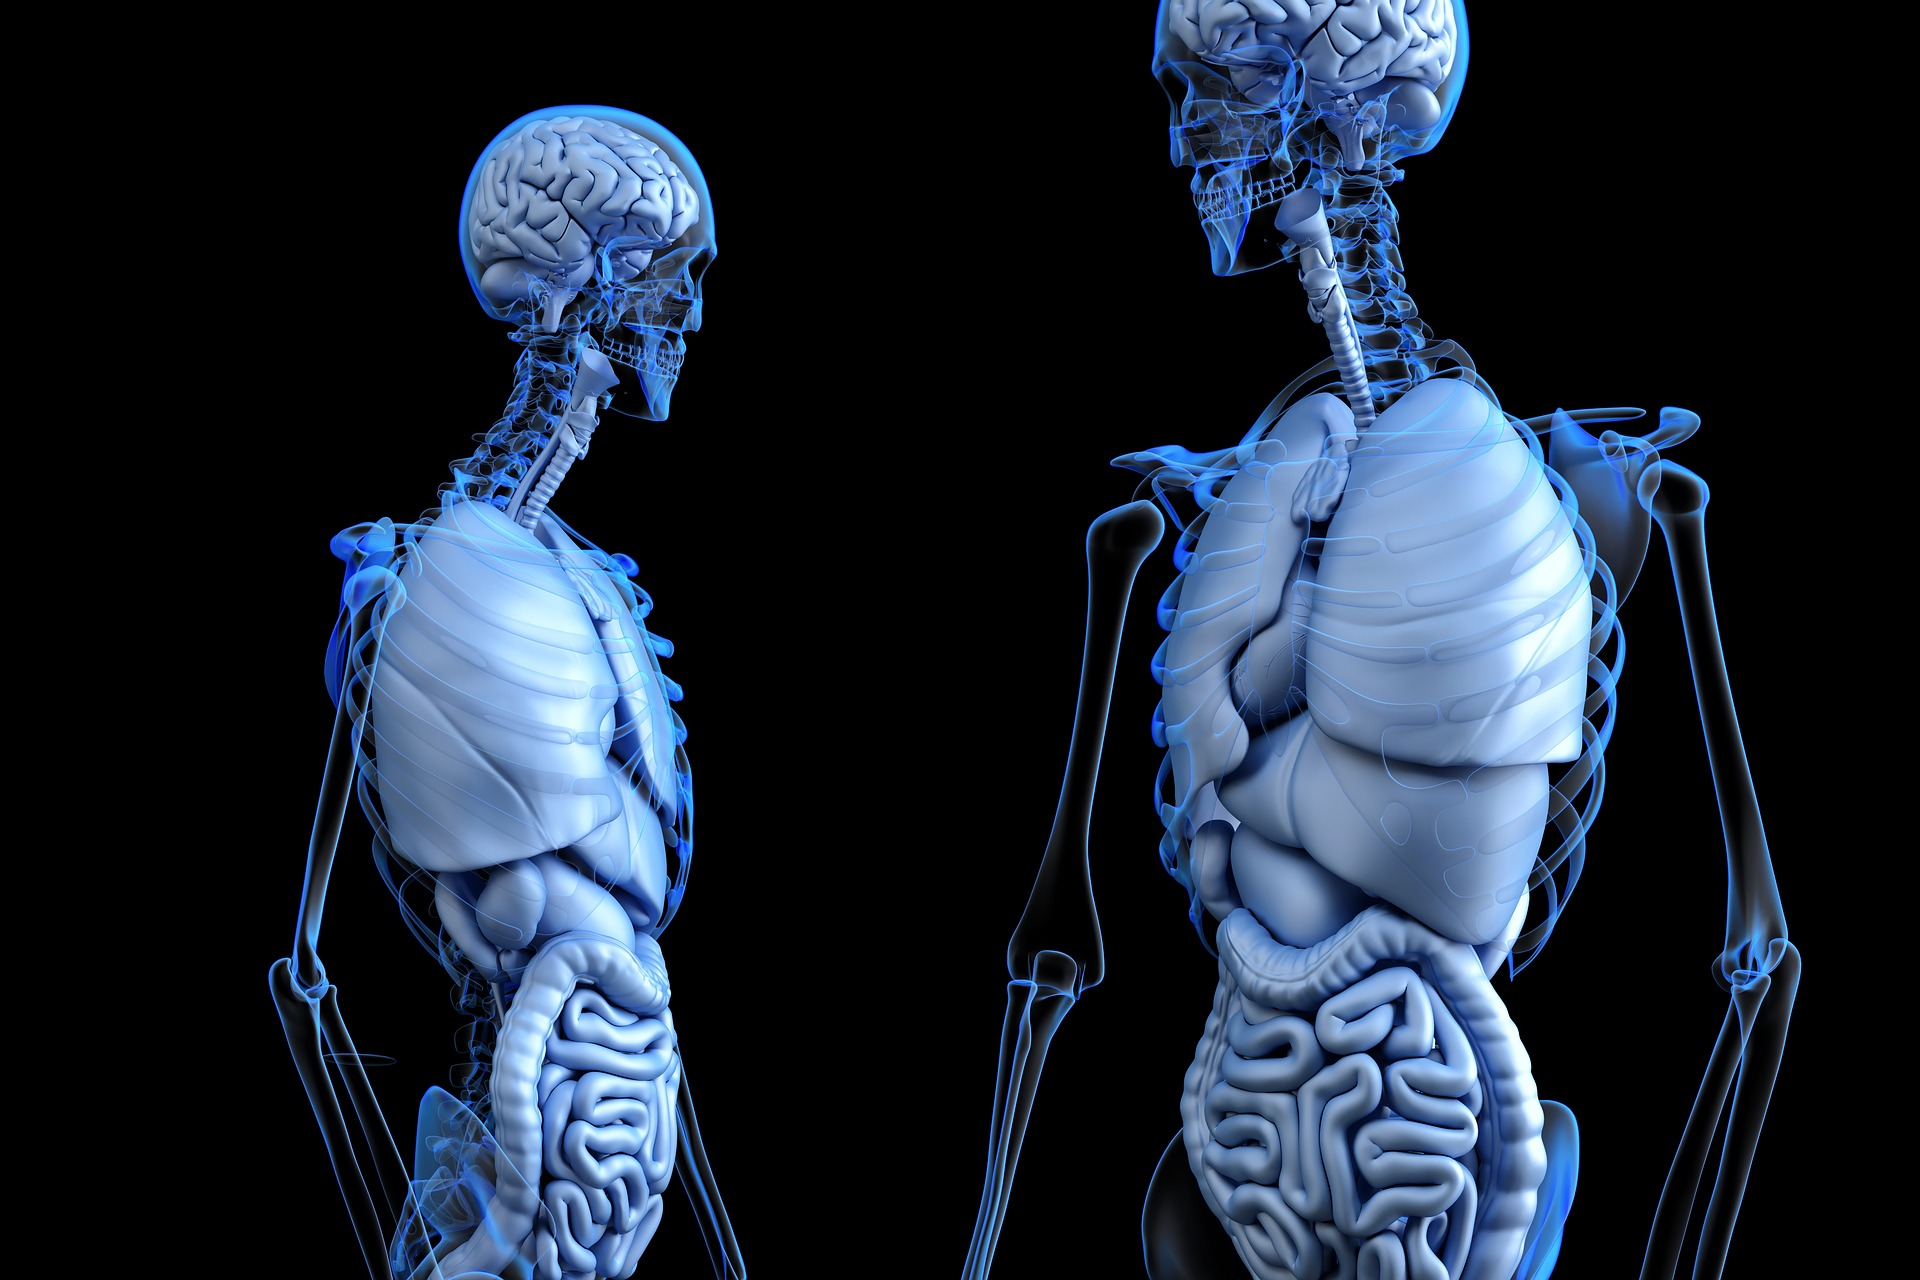 Two digitized blue skeletons on a black background with their internal organs displayed.